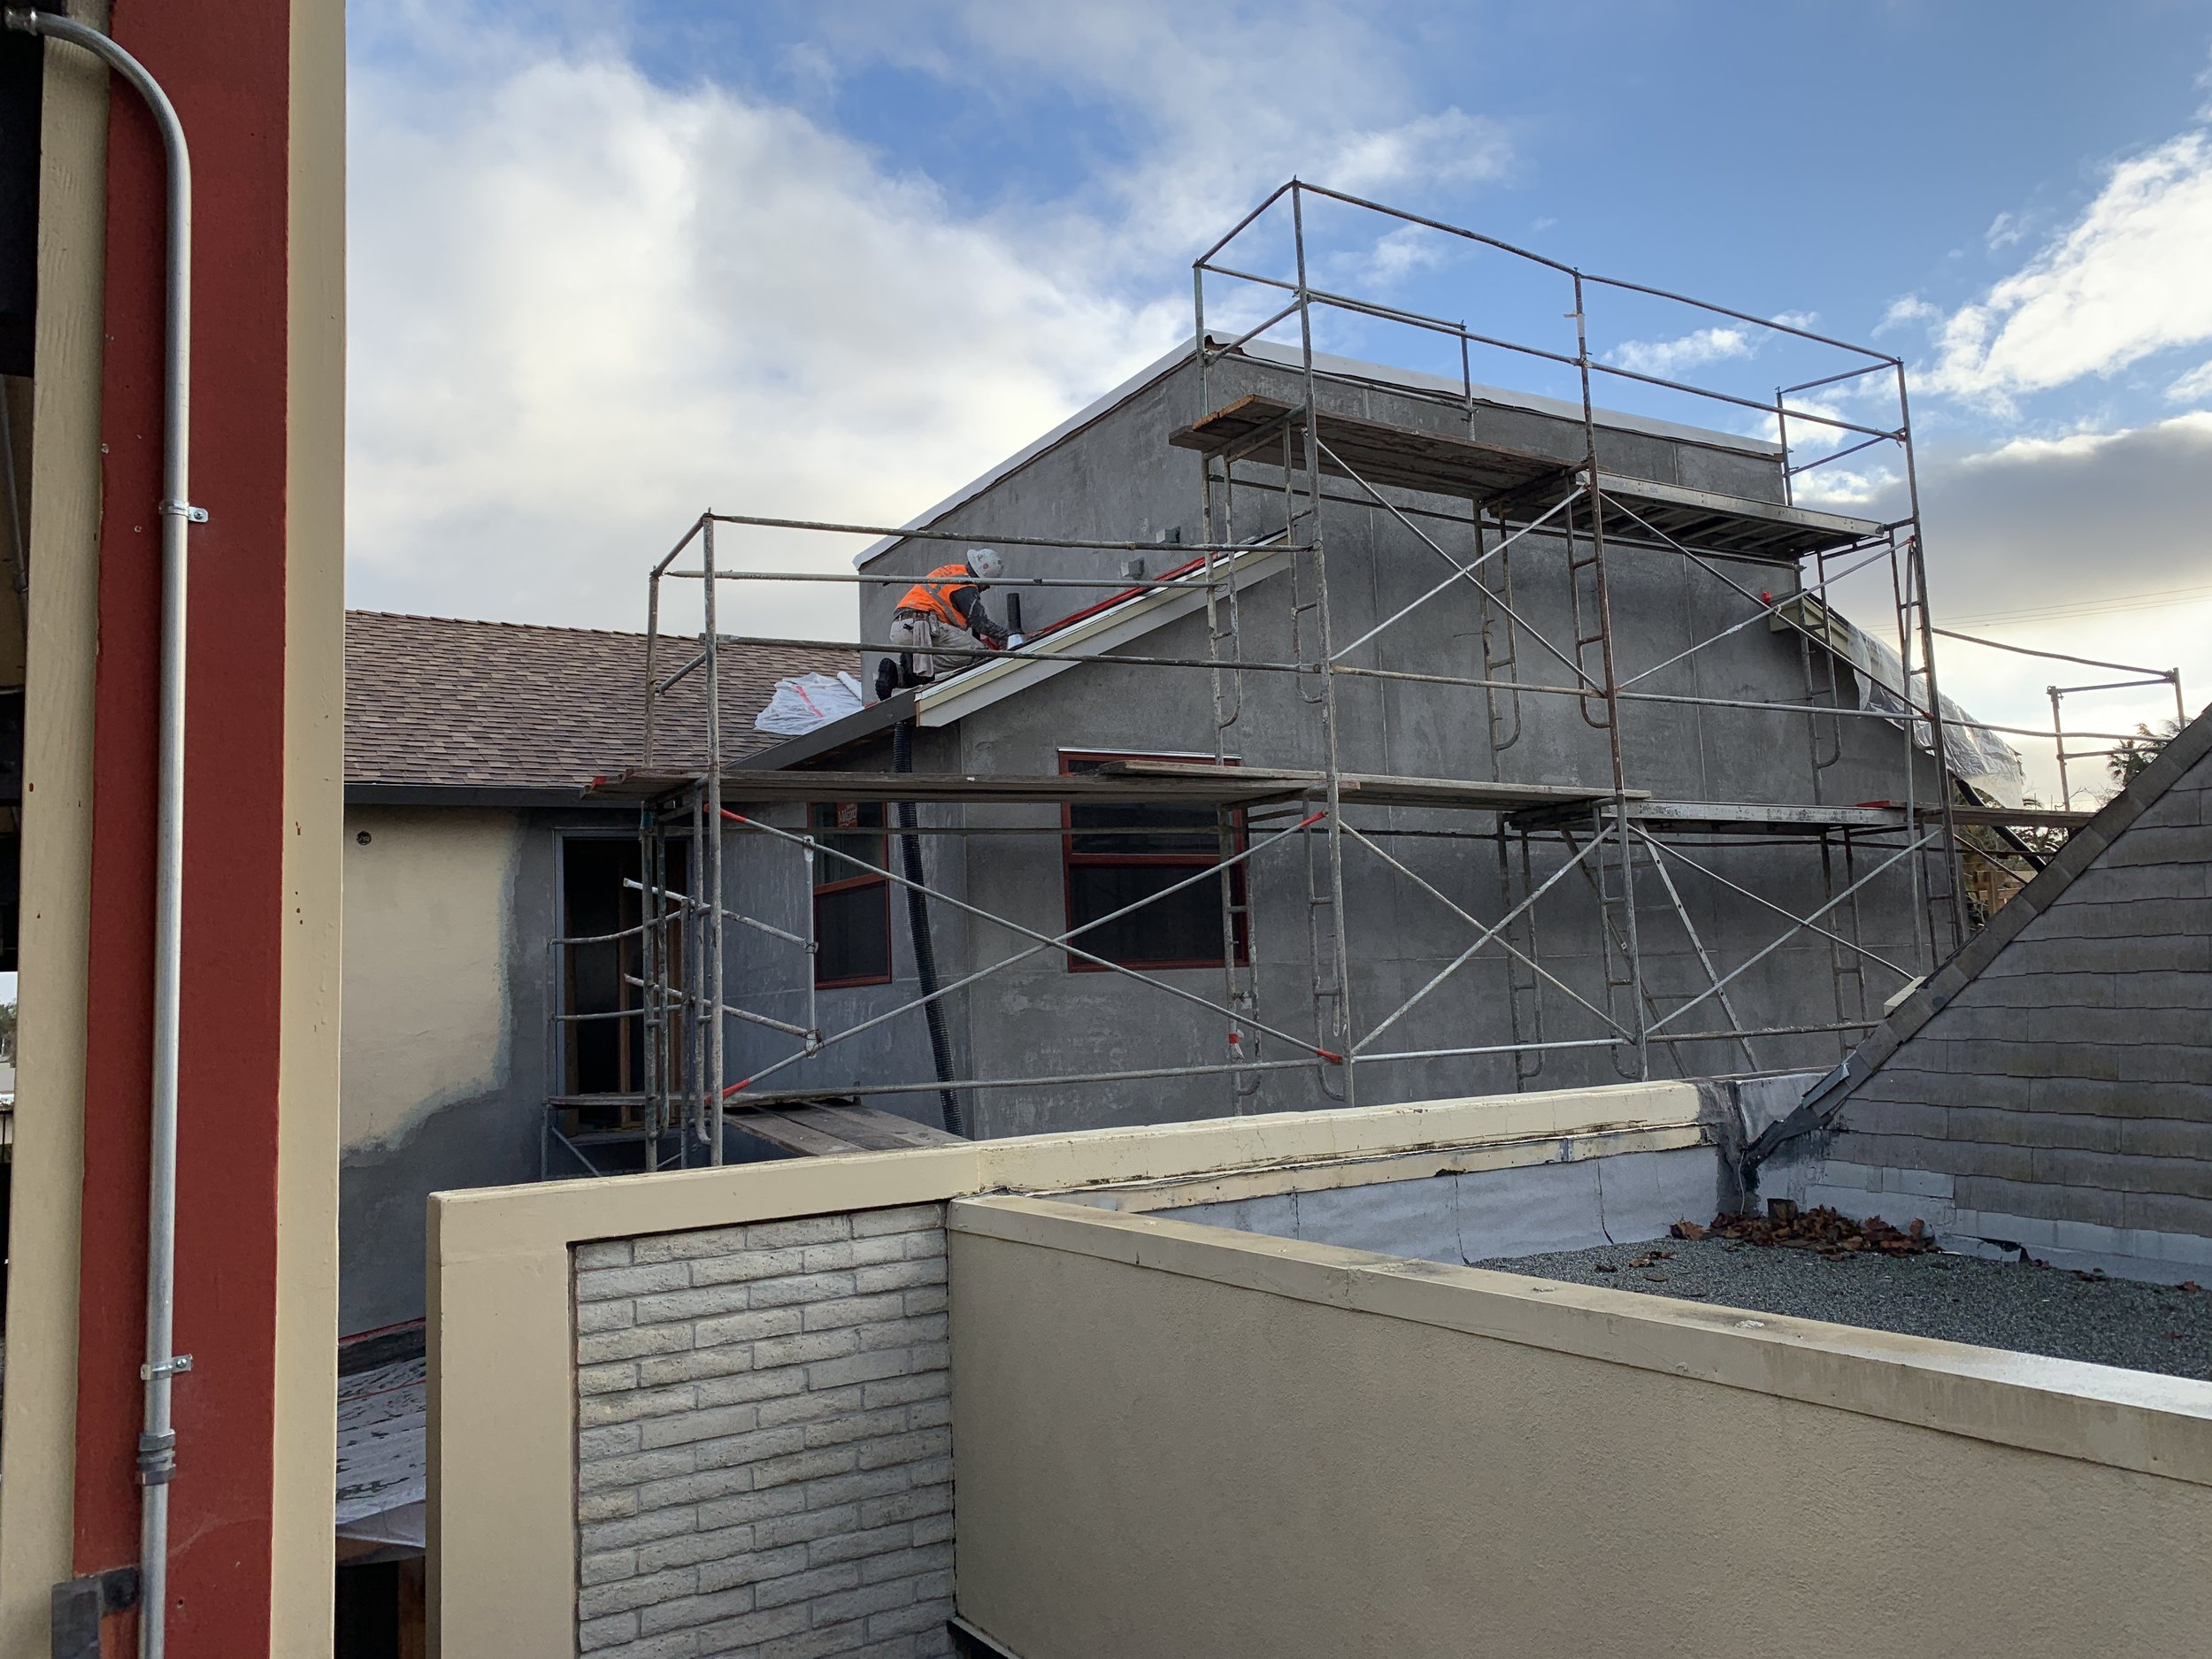 2-28-2019 Stucco on the second floor walls